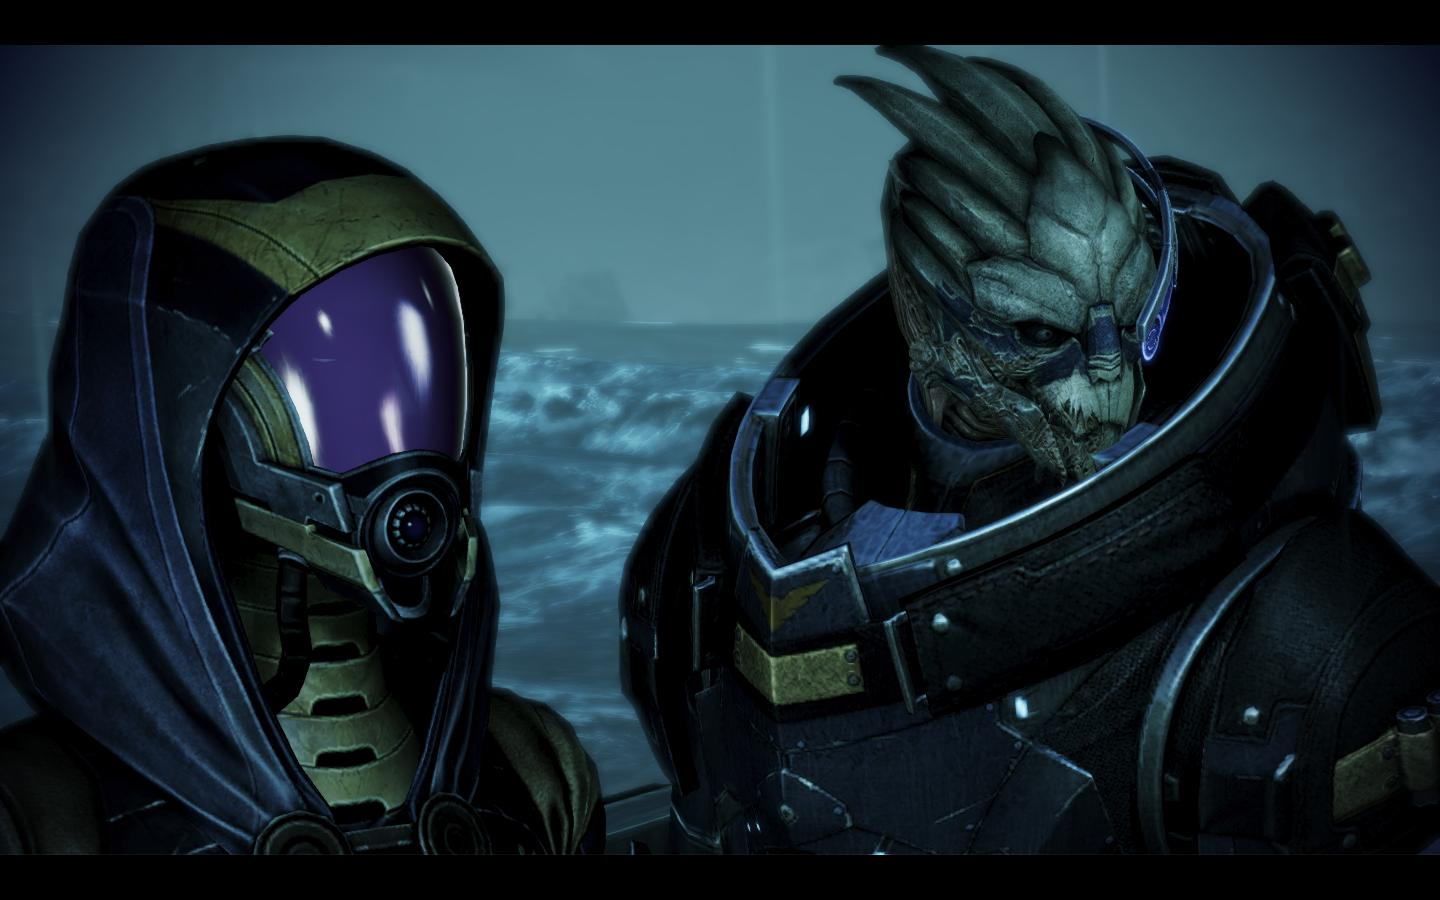 me3_garrus_and_tali_5_by_chicksaw2002-d5dyoe6.jpg